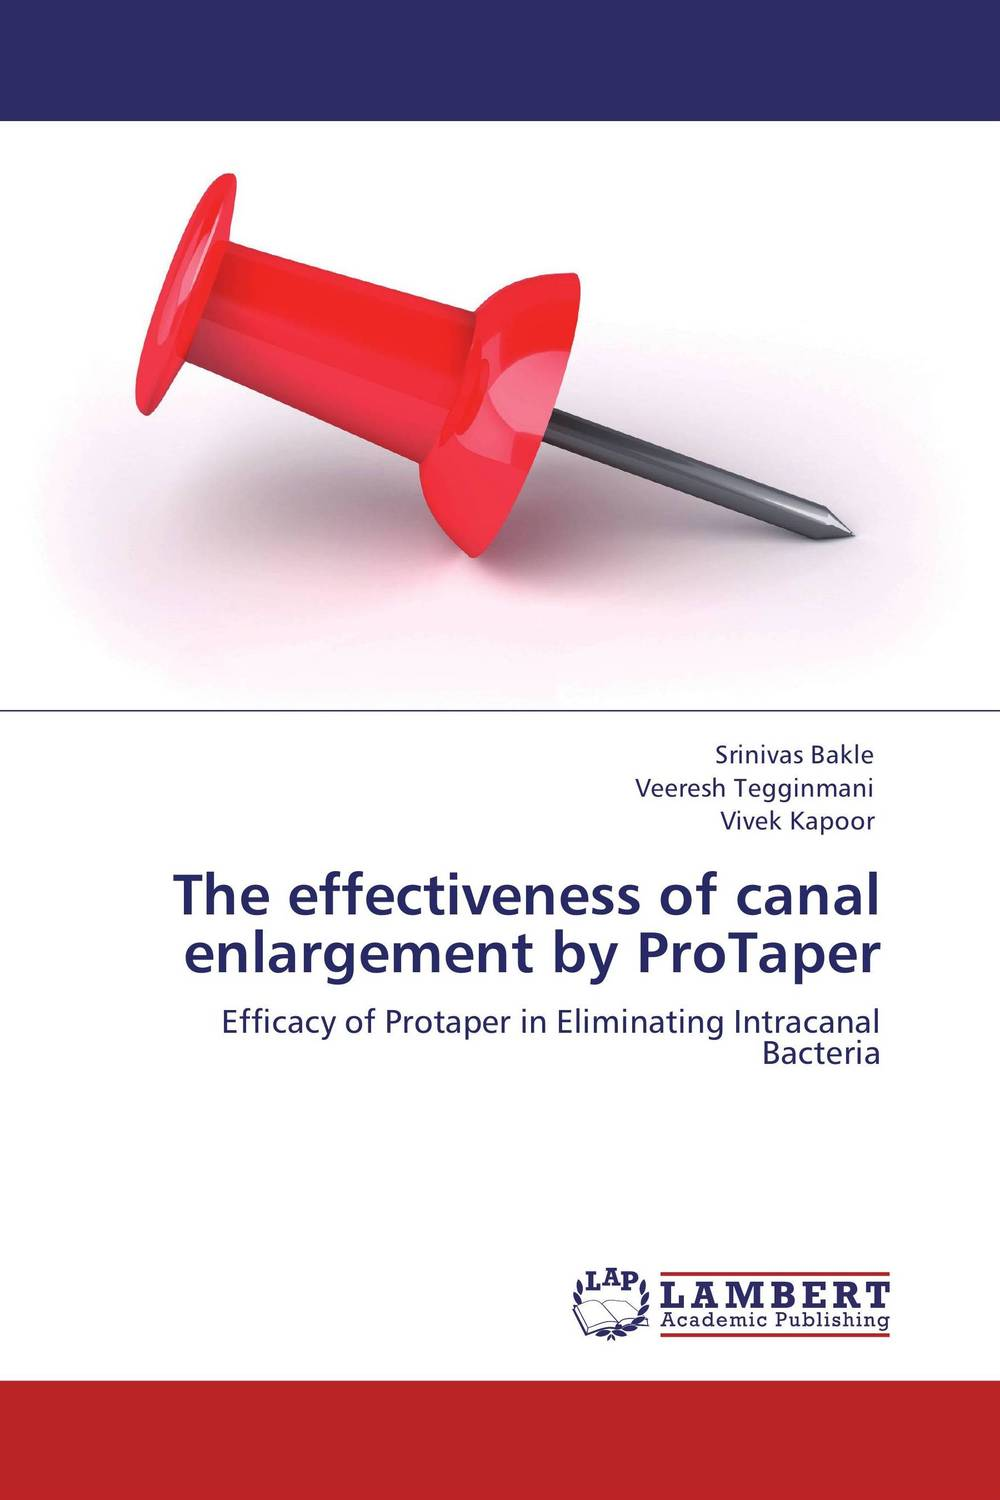 The effectiveness of canal enlargement by ProTaper recent advances in root canal irrigation techniques